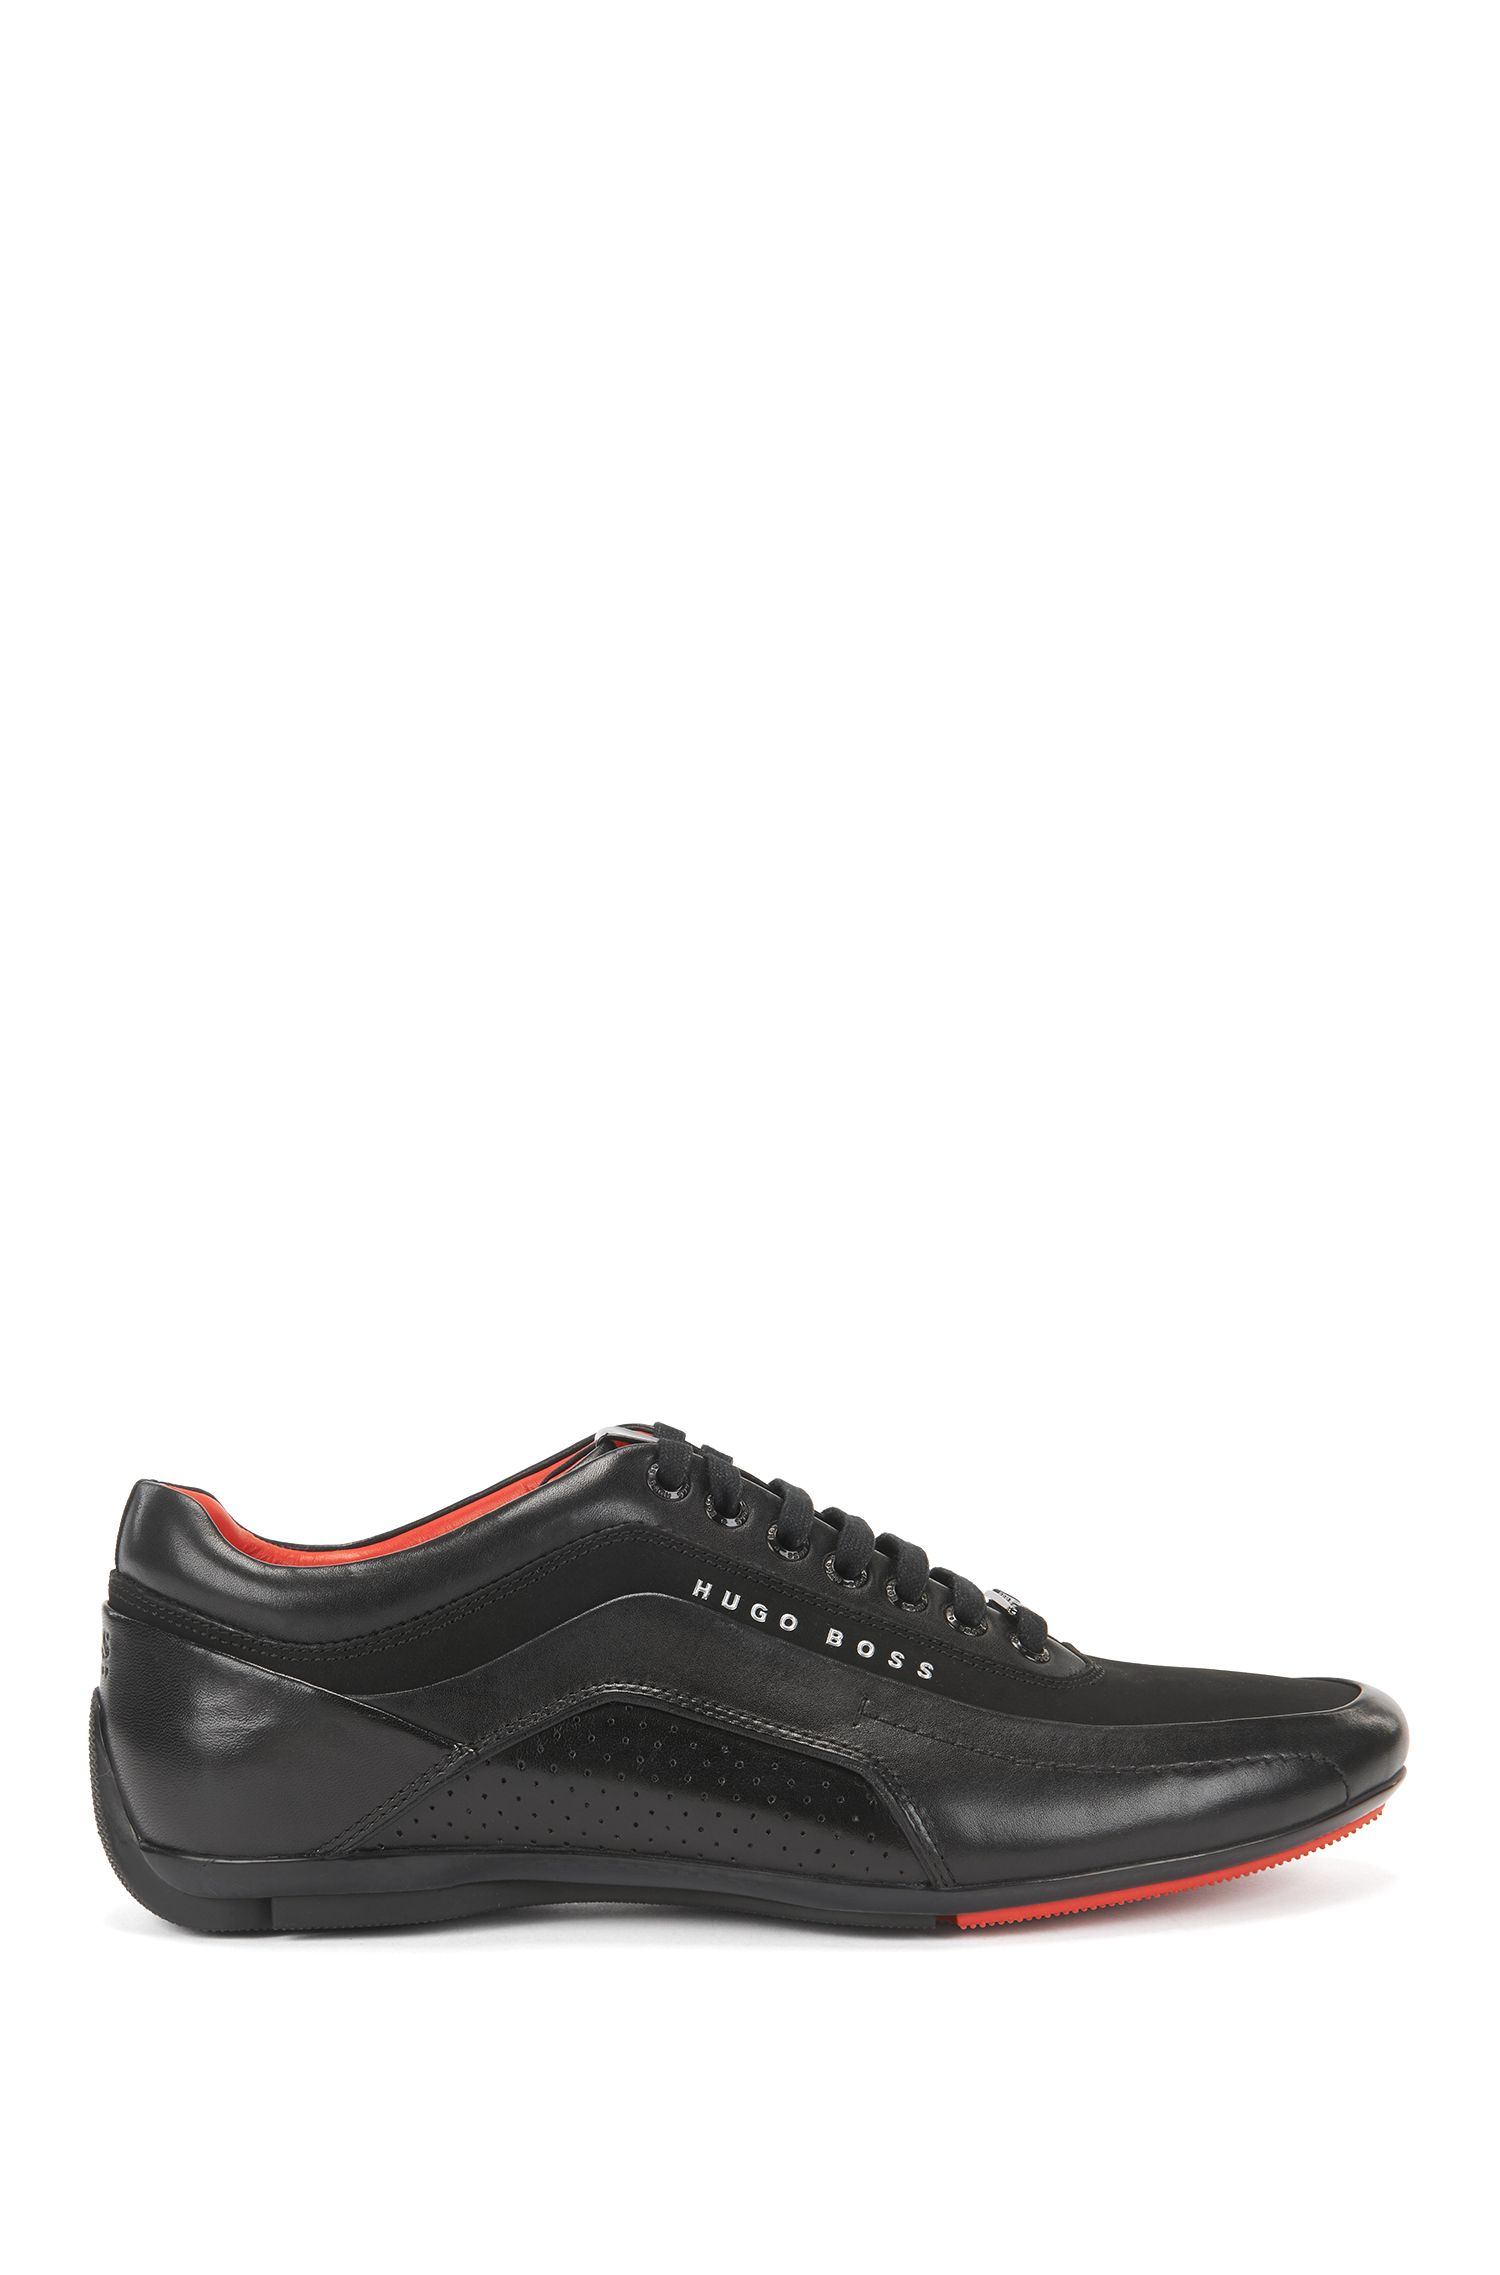 BOSS Hugo Boss Textured Leather Sneaker HB Racing 10 Black